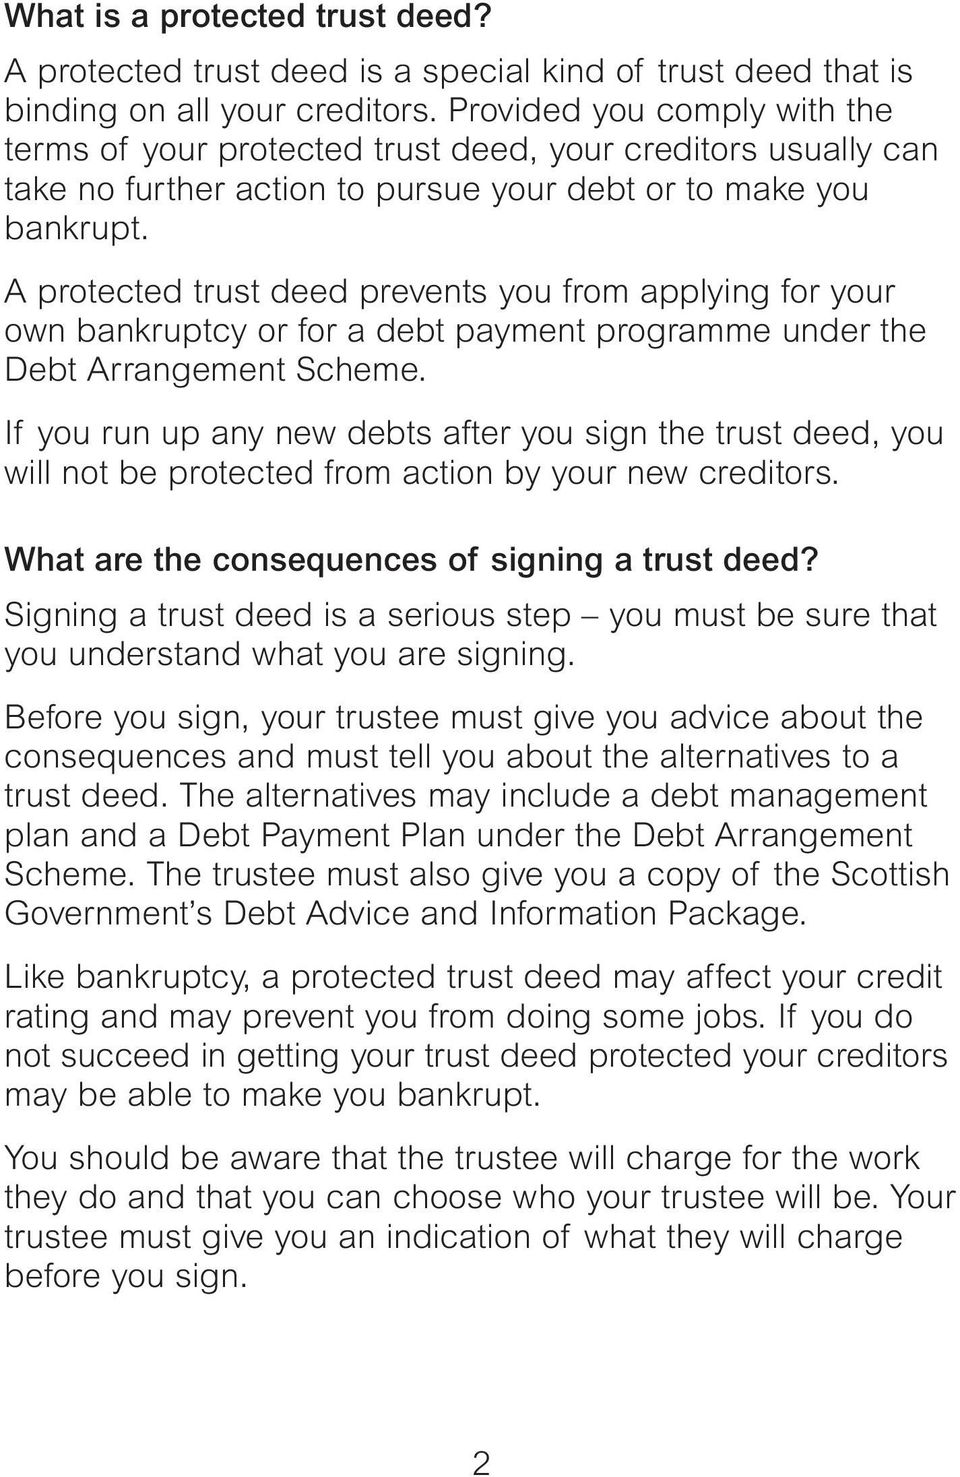 A protected trust deed prevents you from applying for your own bankruptcy or for a debt payment programme under the Debt Arrangement Scheme.